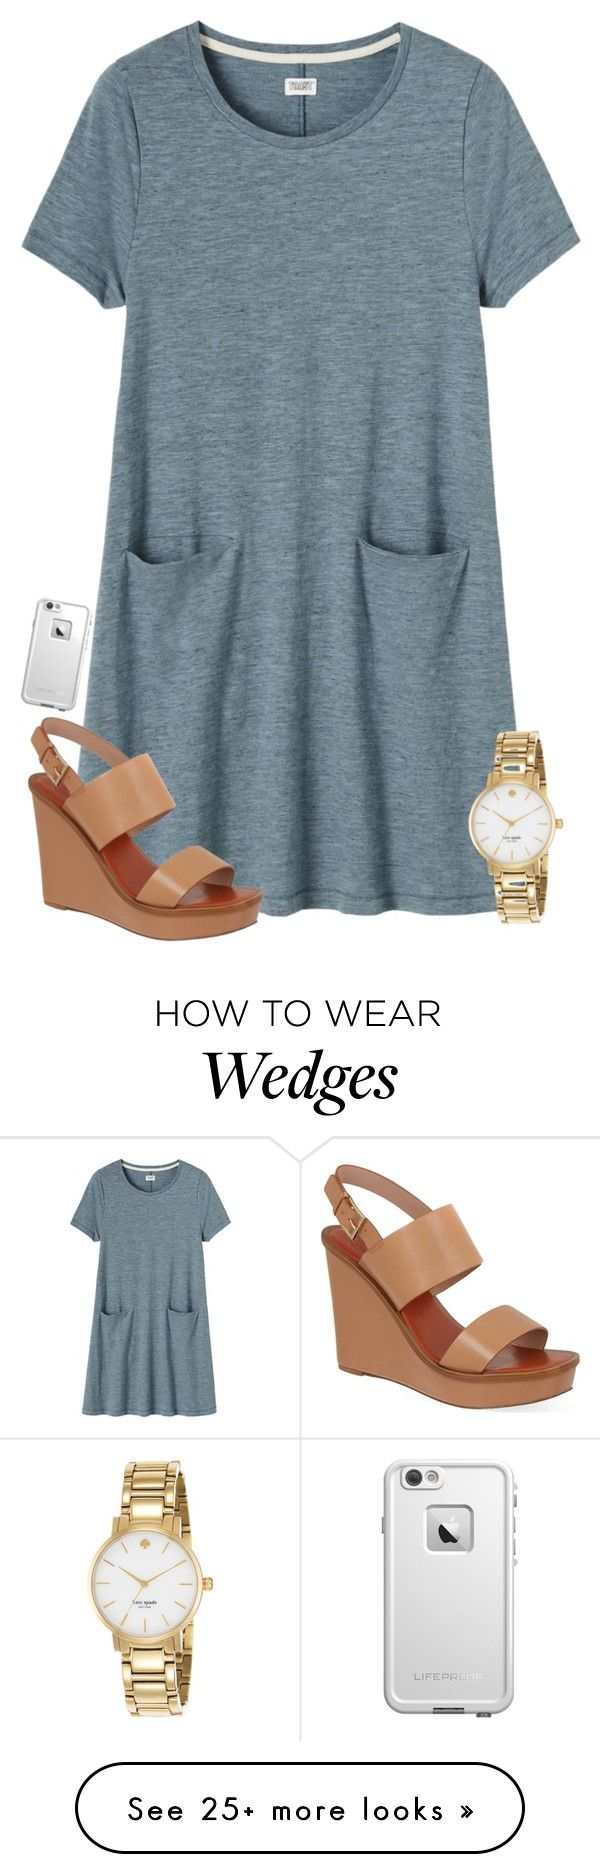 """Not the best..."" by laxsoccerlover36 on Polyvore featuring Toast, Tory Burch, LifeProof, Kate Spade, women's clothing, women, female, woman, misses and juniors"